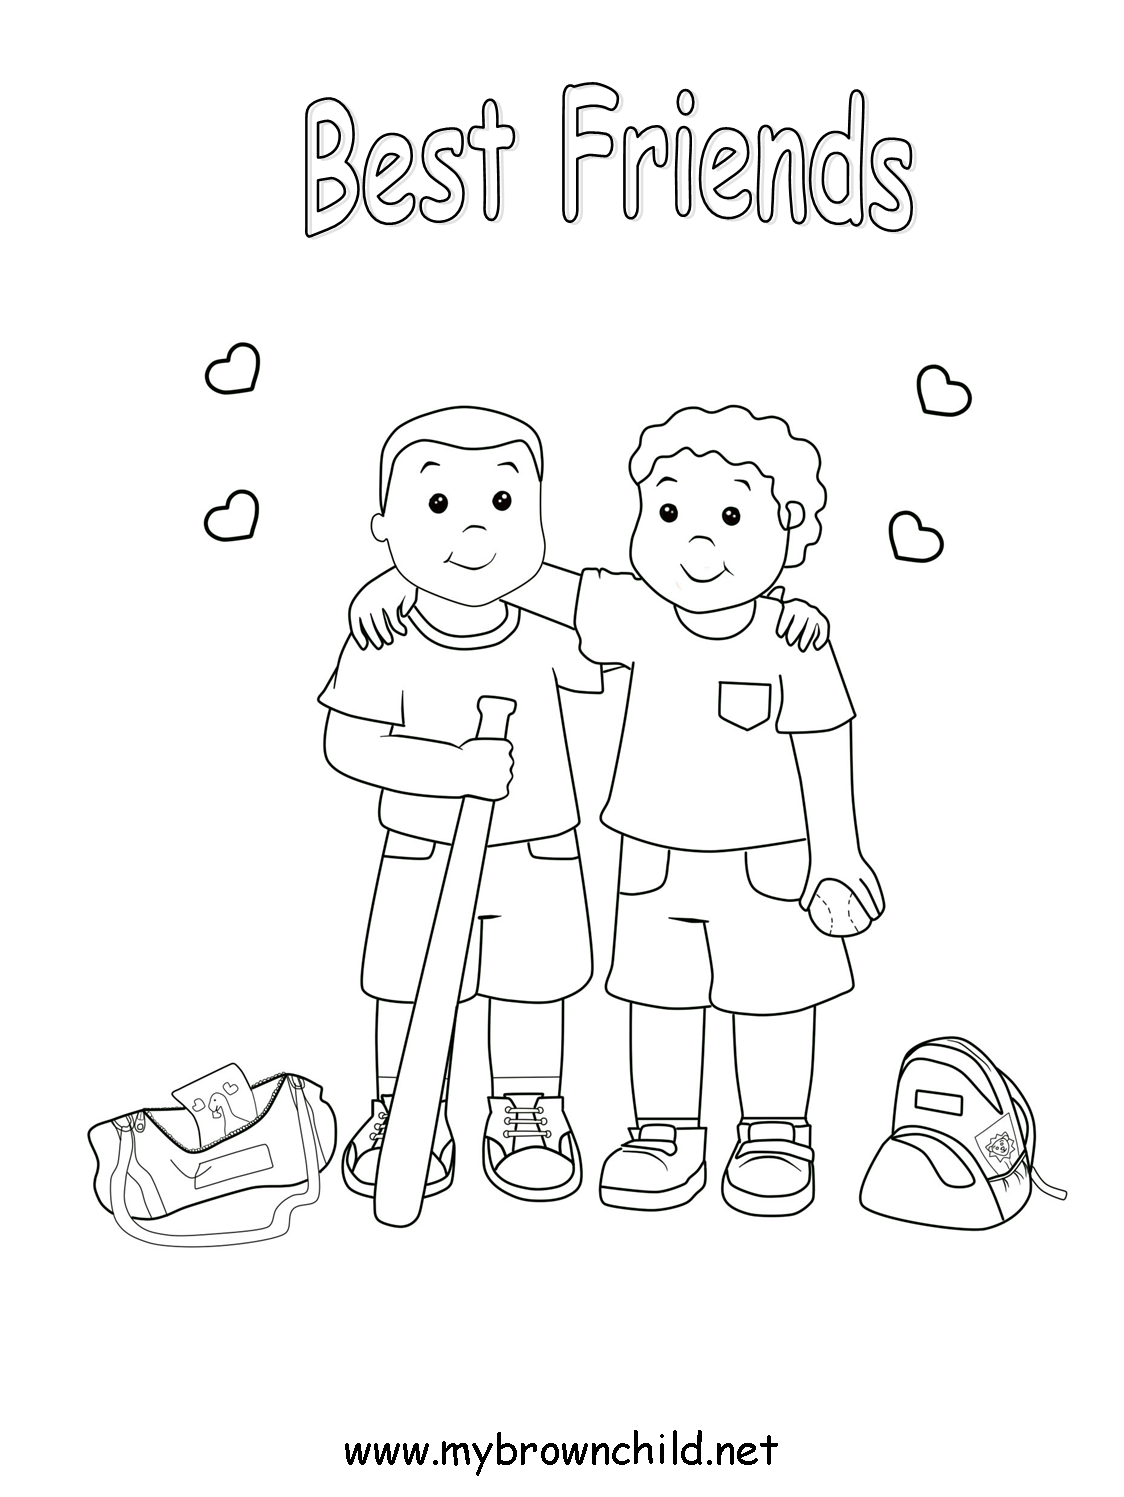 Coloring Pages For Friends - Coloring Home